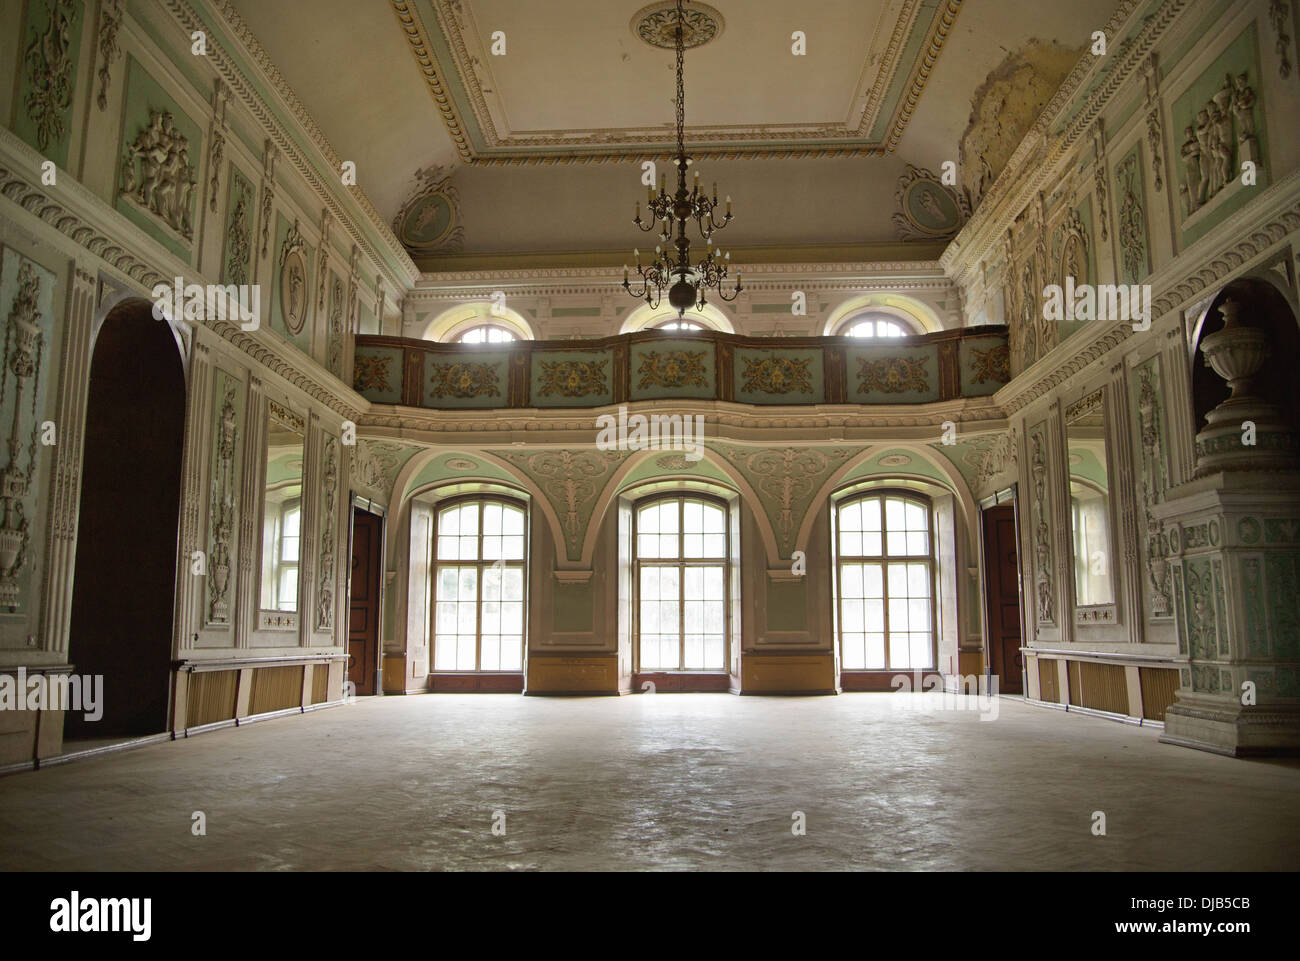 Picture presenting interior of the antique palace - Stock Image